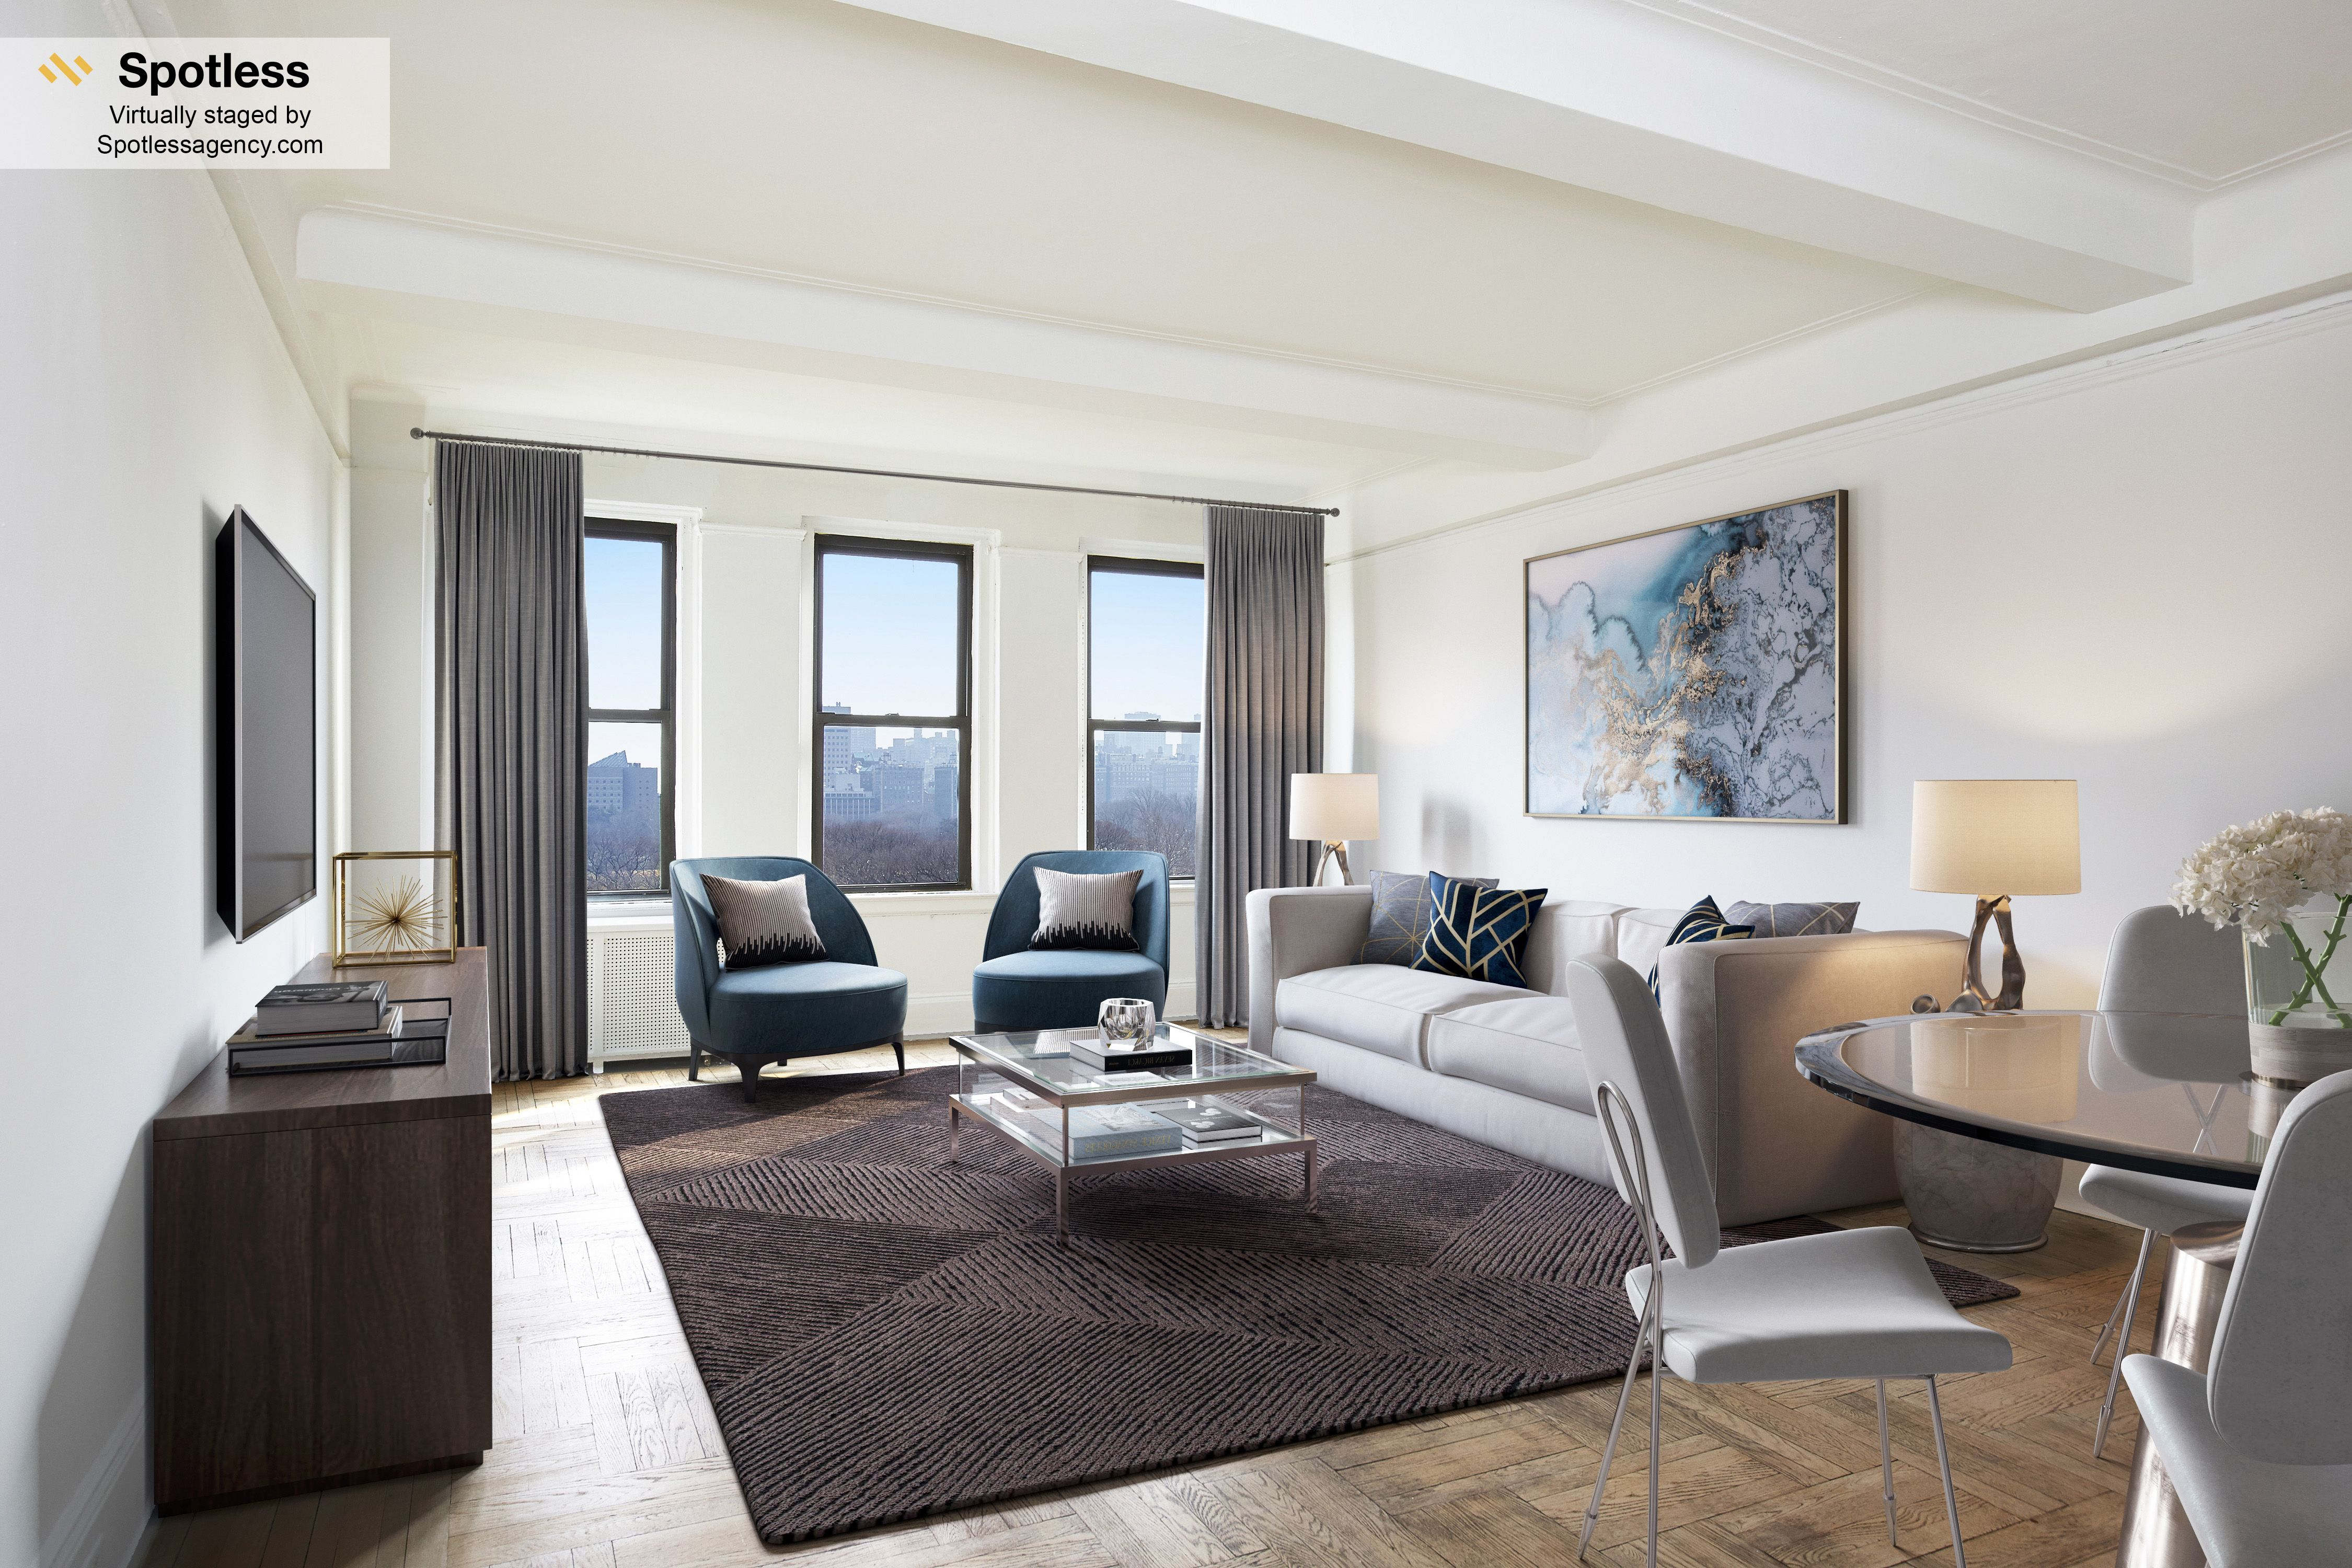 Virtual Staging Living room by Spotless Agency #virtualystaging ...